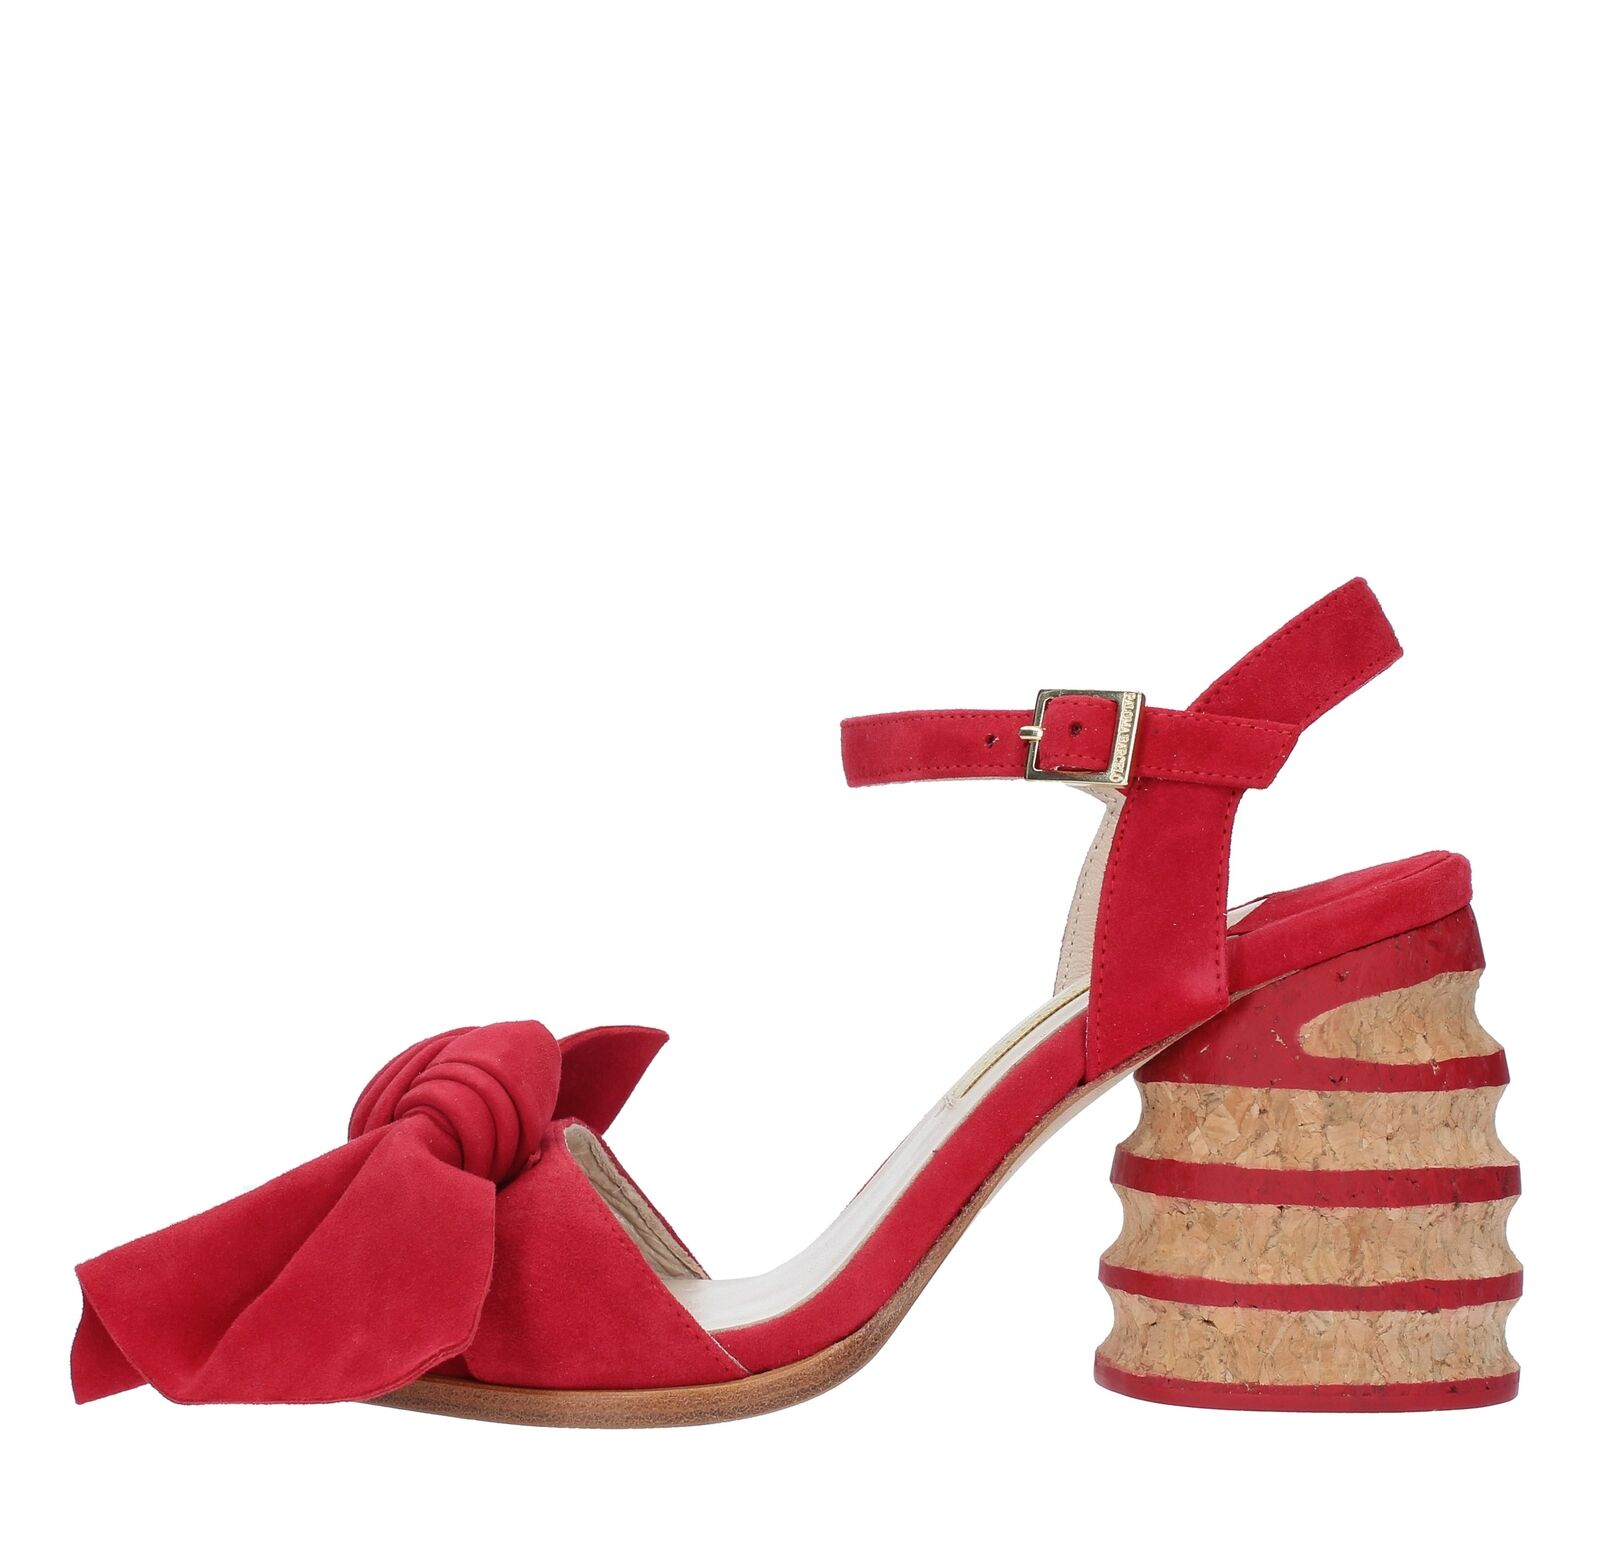 Ae2 _ Pole shoes Sandals Paloma Barcelo 'Red Woman